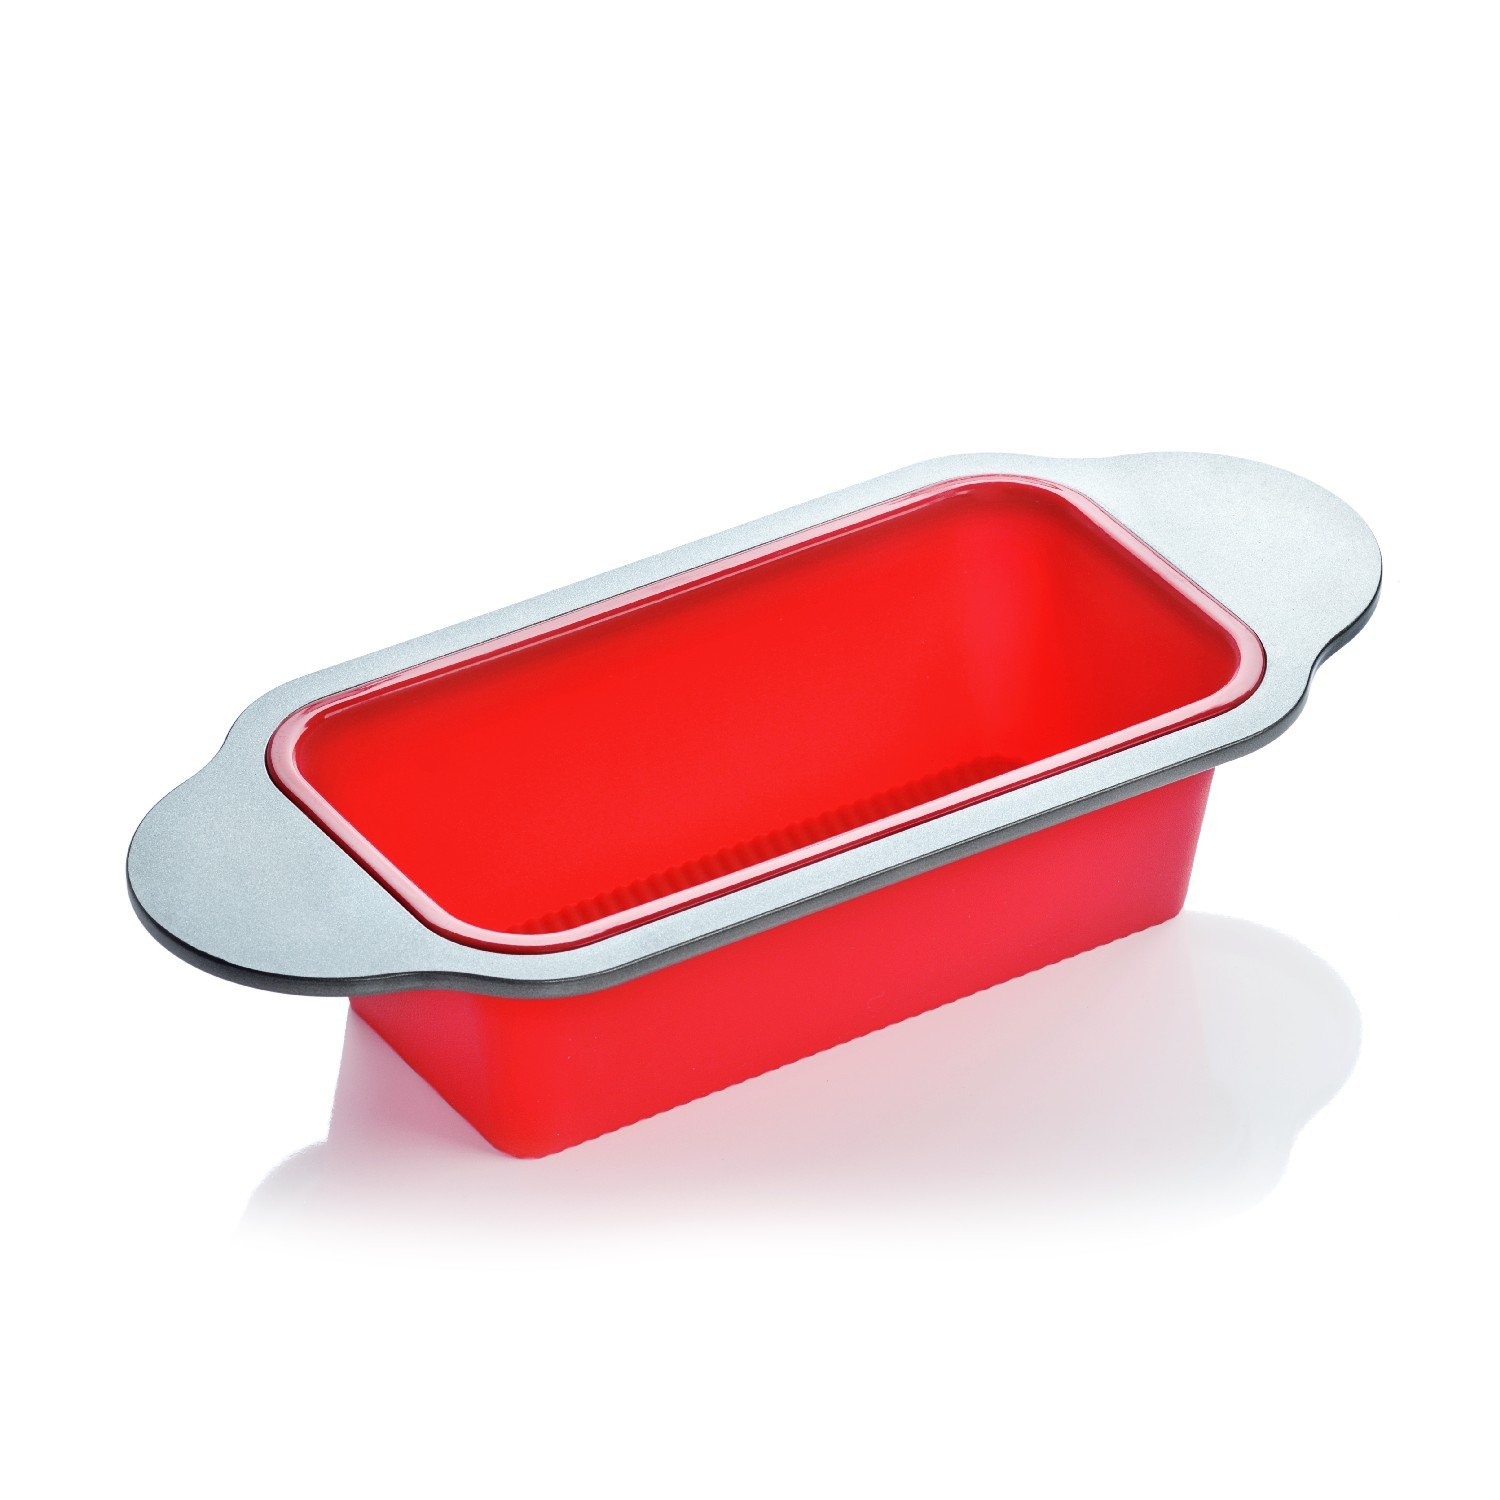 Meatloaf and Bread Pan | Gourmet Non-Stick Silicone Loaf Pan by Boxiki Kitchen | for Baking Banana Bread, Meat Loaf, Pound Cake | 8.5'' FDA-Approved BPA-free Silicone, Steel Frame + Handles